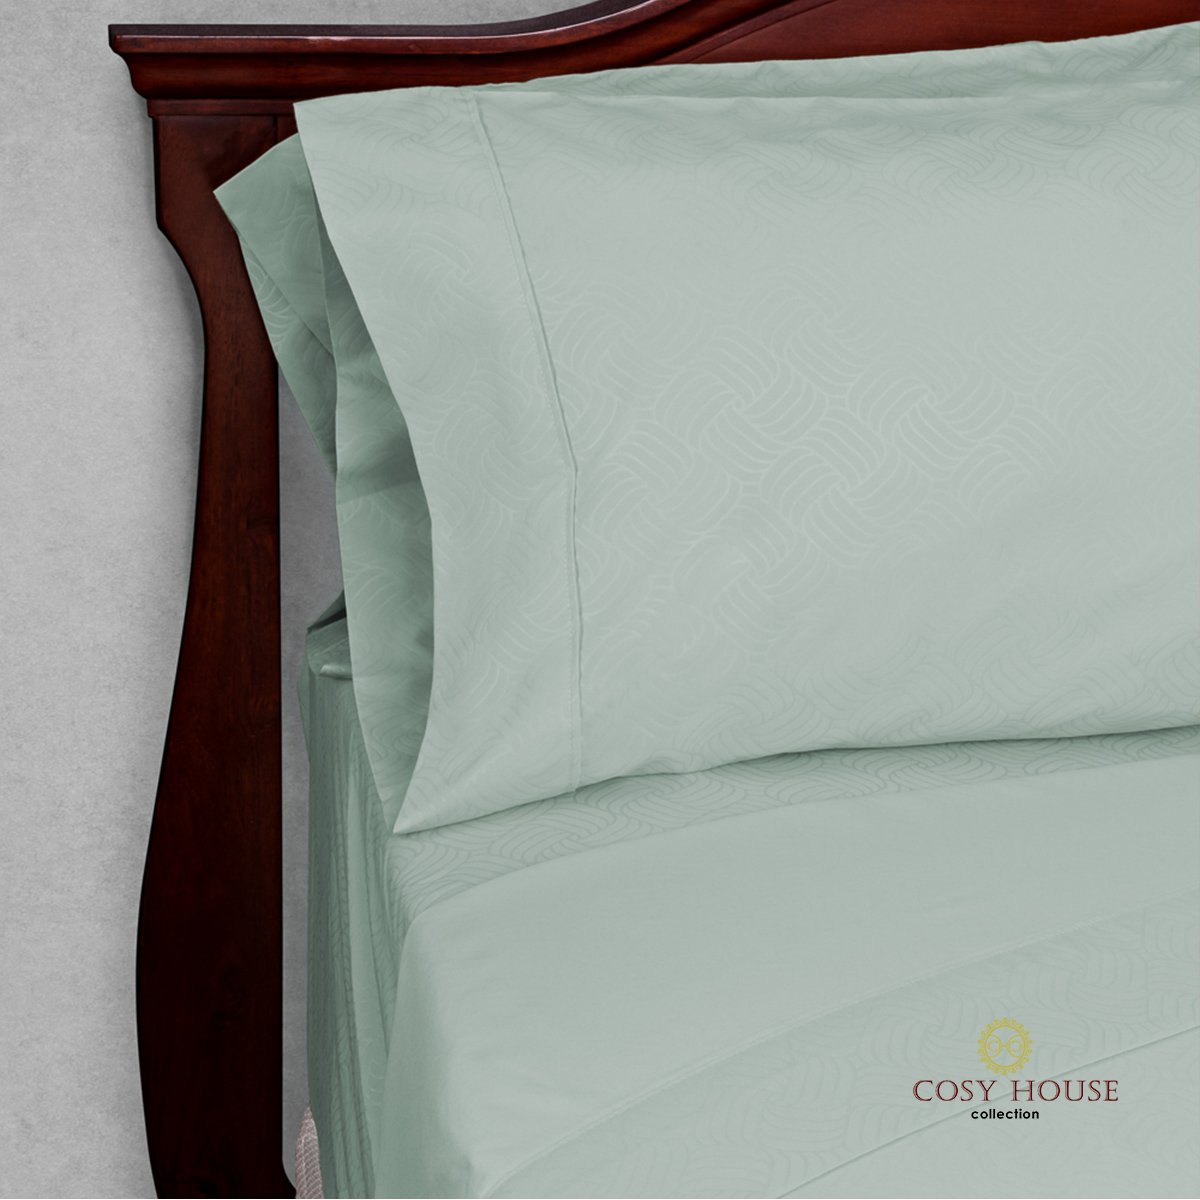 Elegant Bed Sheets - King Size, Teal (Wavy) - Luxury 6 Piece Hotel Bedding Set